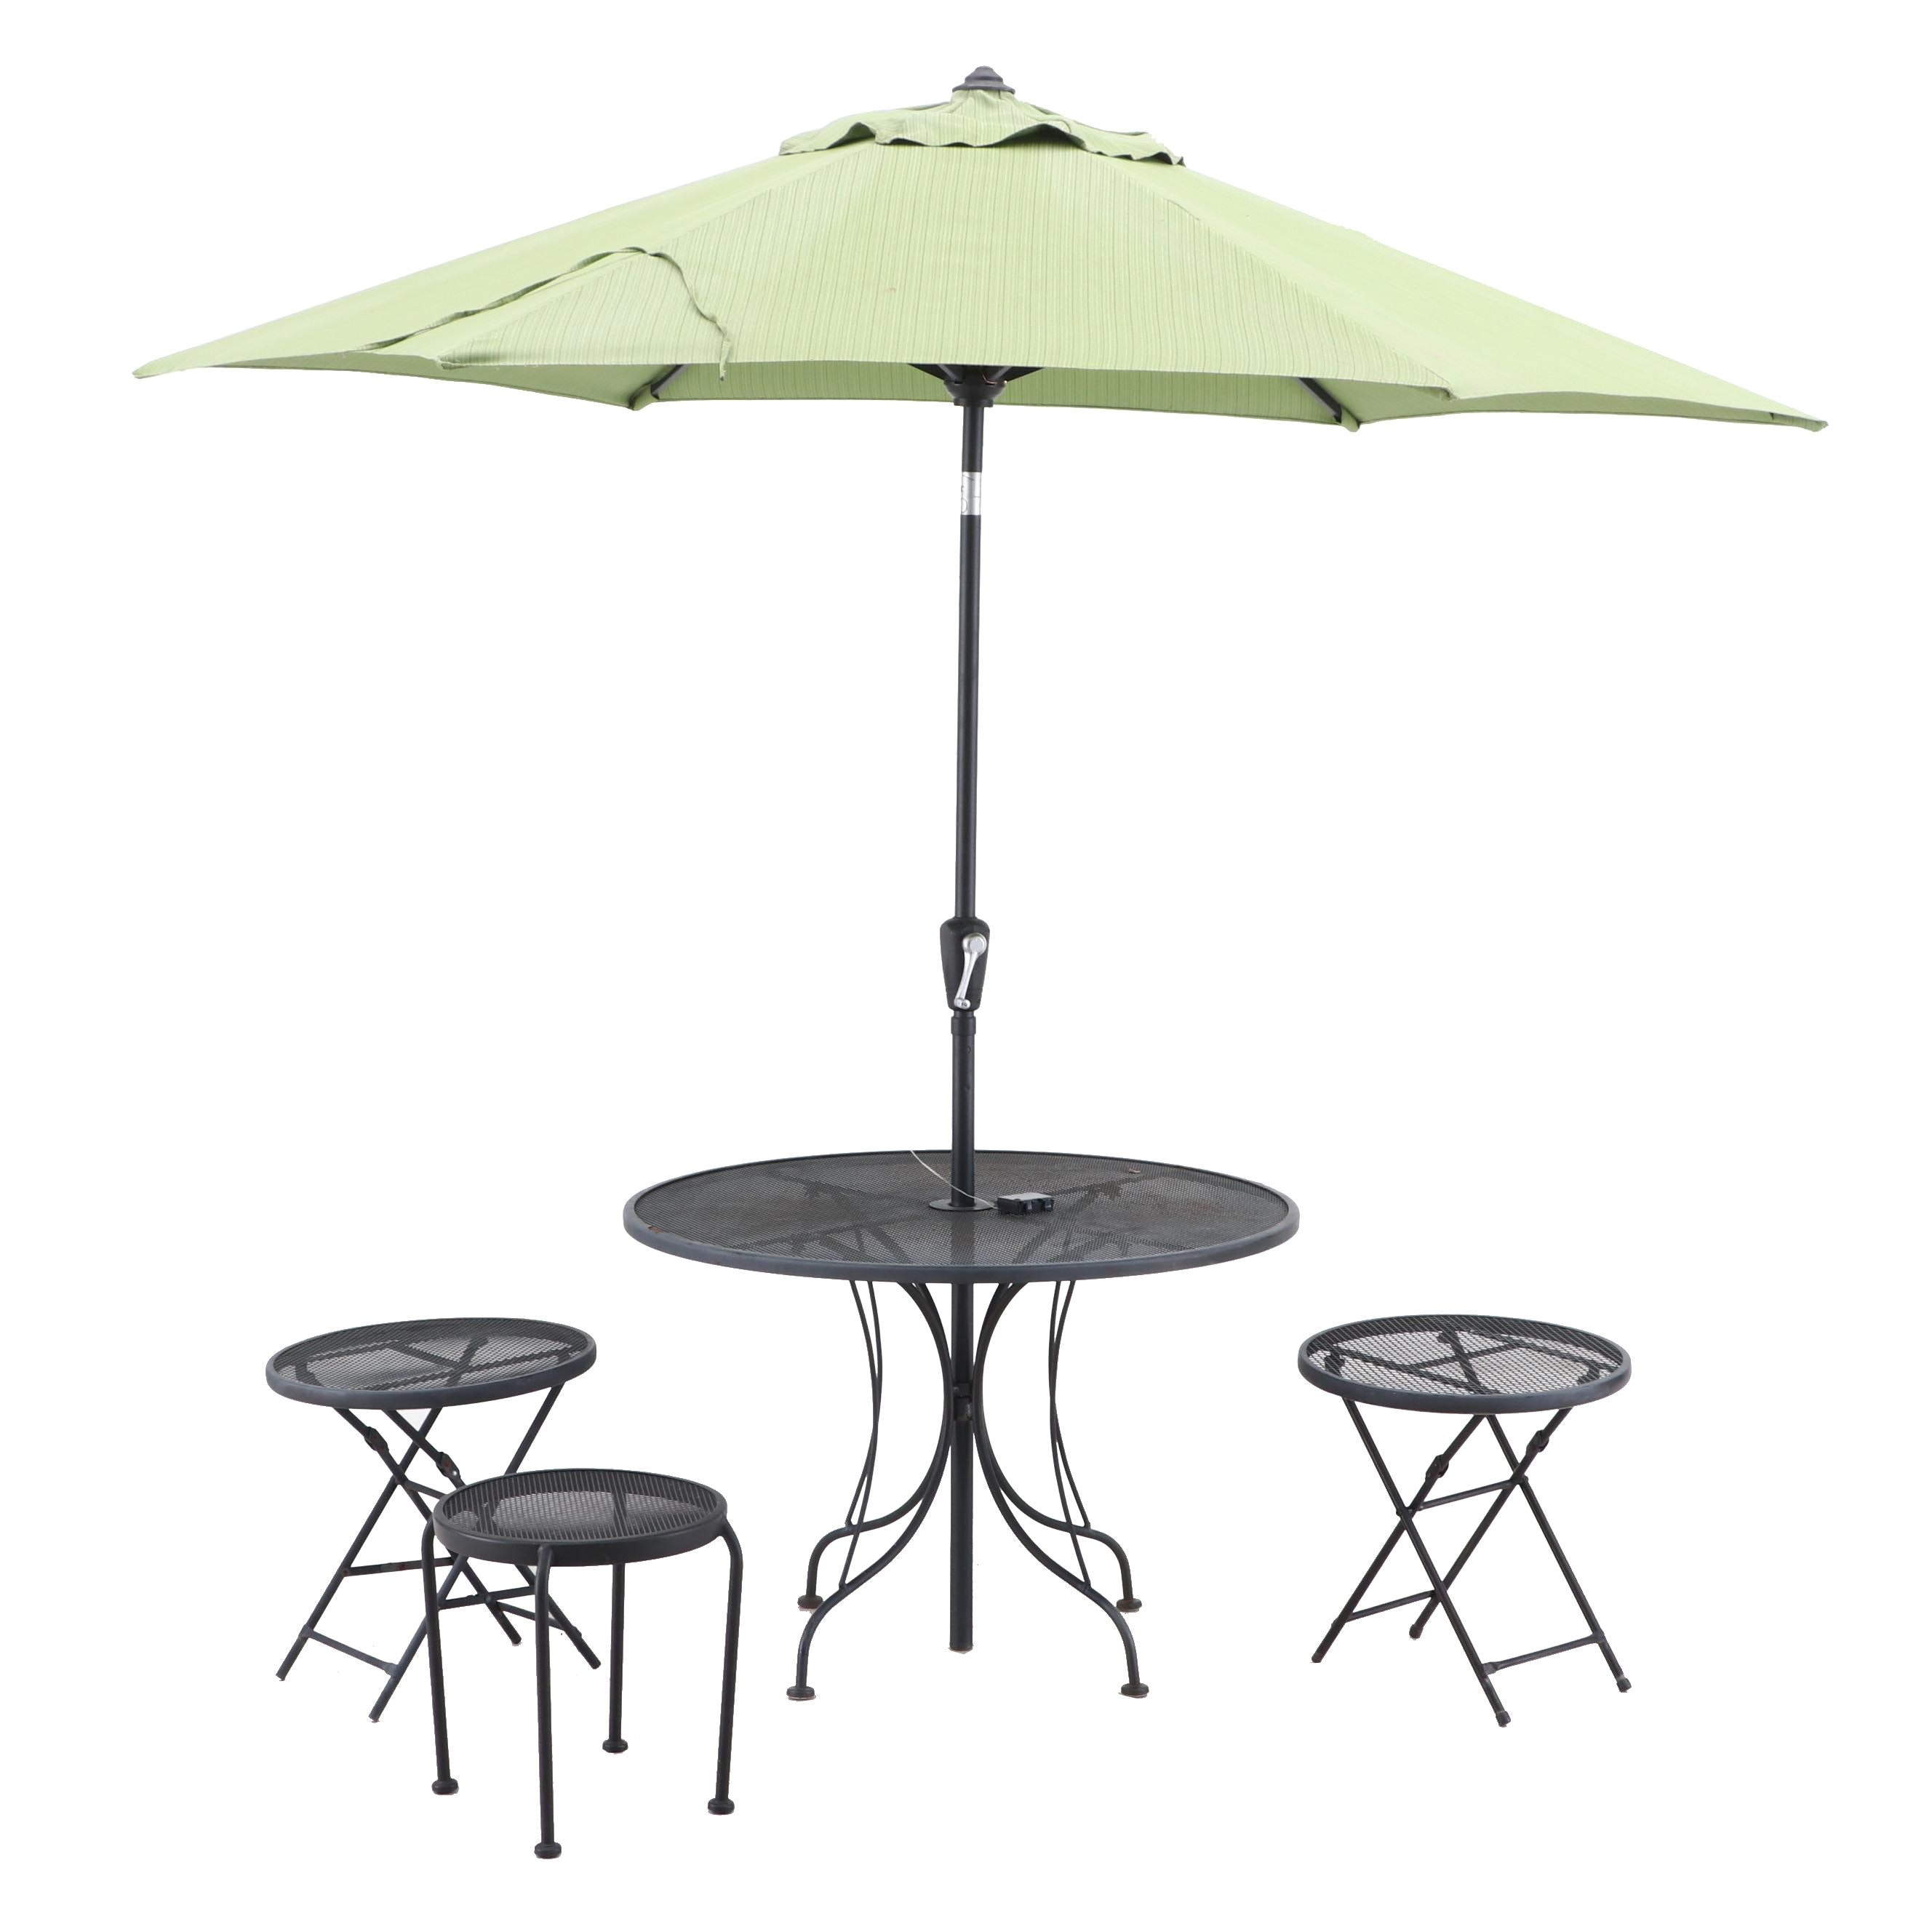 Patio Table with Umbrella and Three Stools